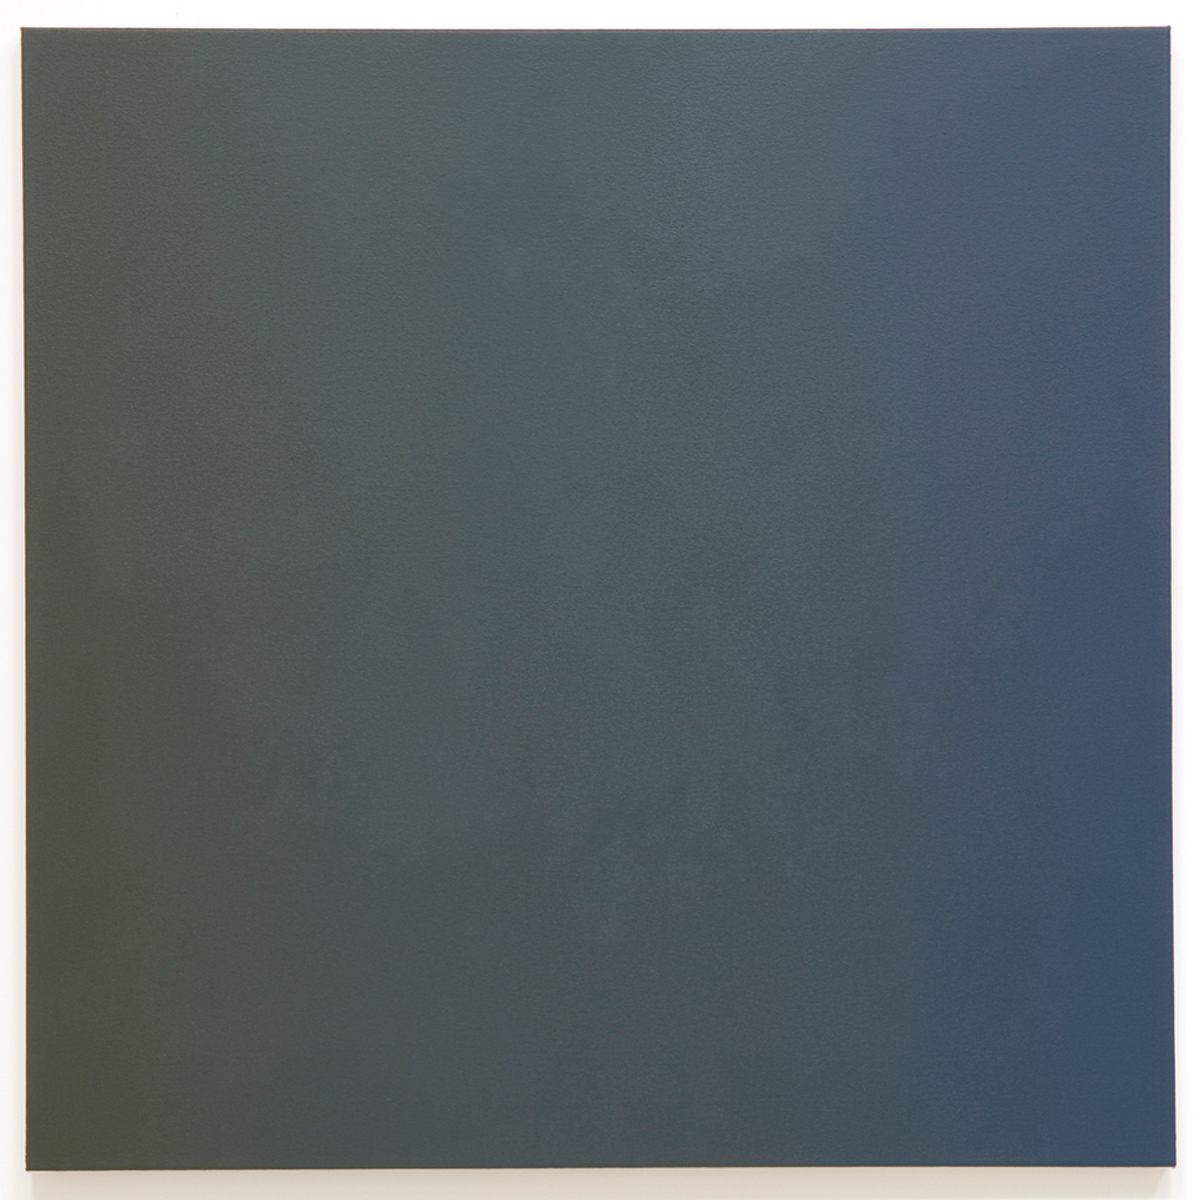 Shifting 3 (Blue Orange), Phase & Shifting Gray Series, 2008, oil on canvas, 40 x 40 in. (102 x 102 cm.)